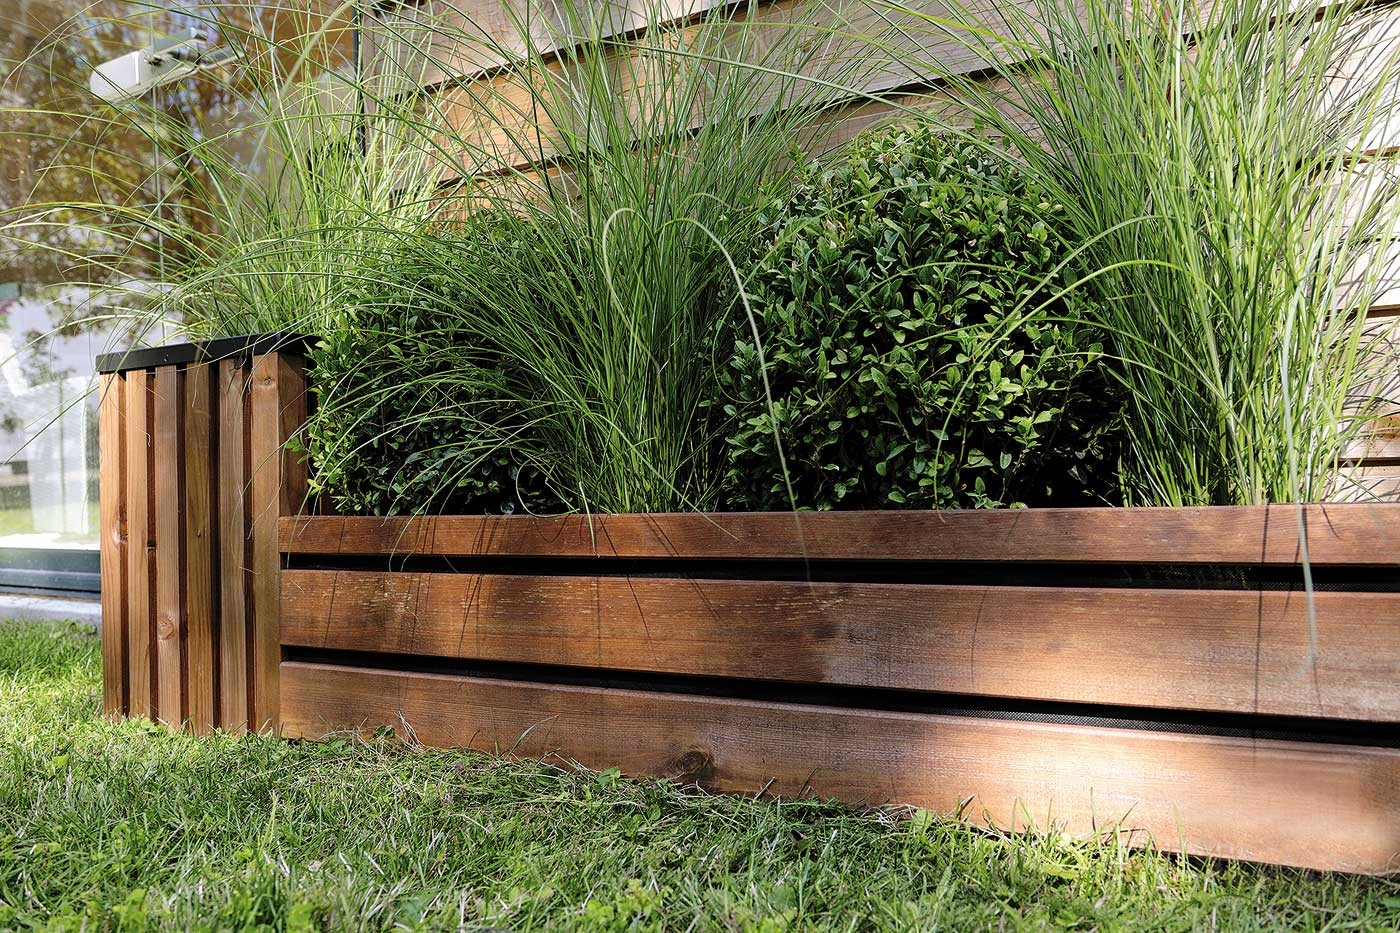 Bordure bois planter 23 43 x 100 cm for Bordures de jardin en bois